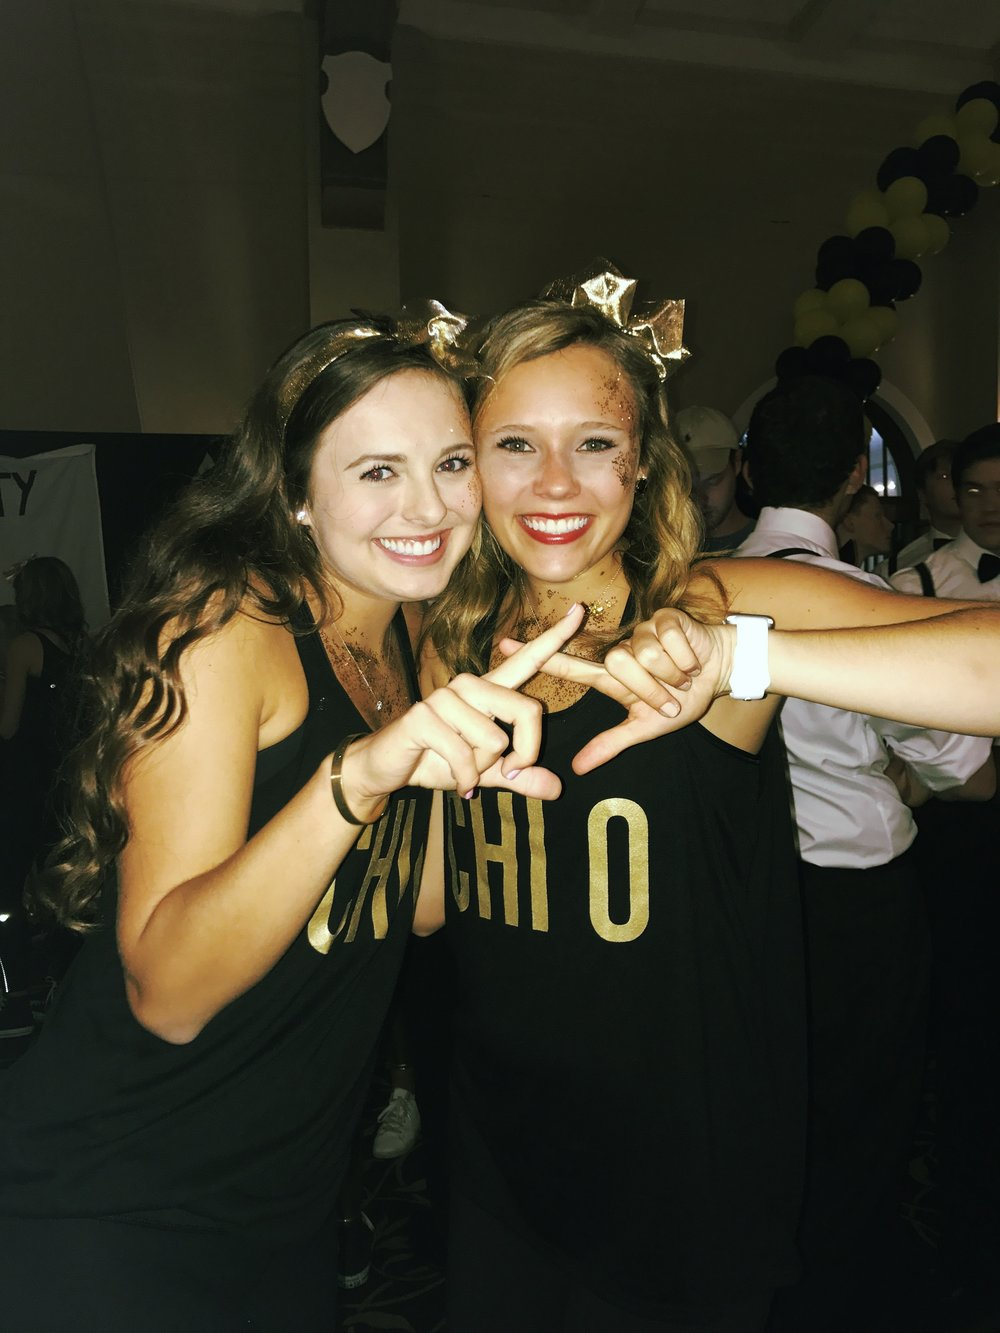 iowa_shout_homecoming_throw_chi_omega.jpeg